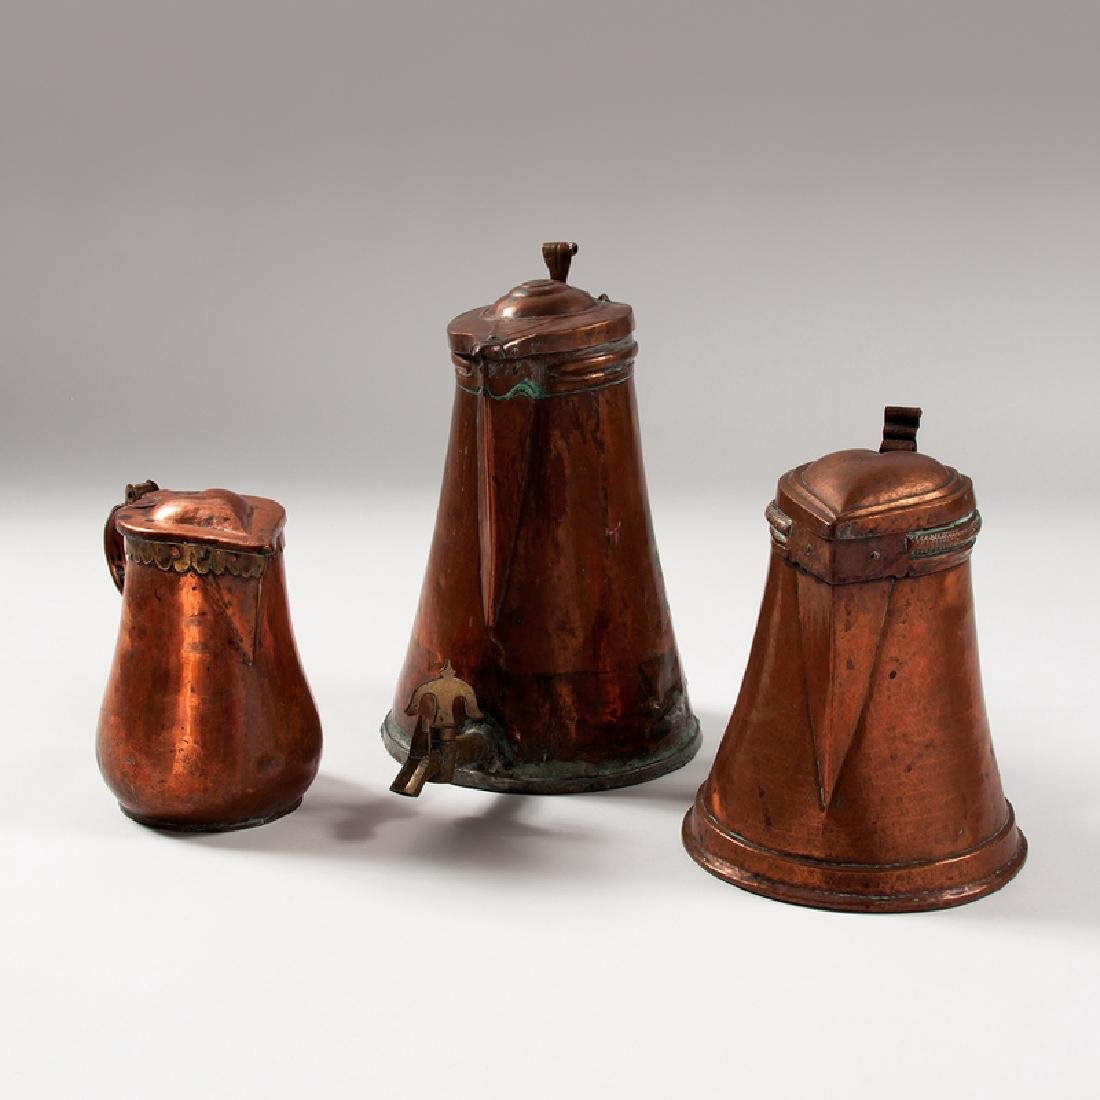 Copper Pitchers and Urn